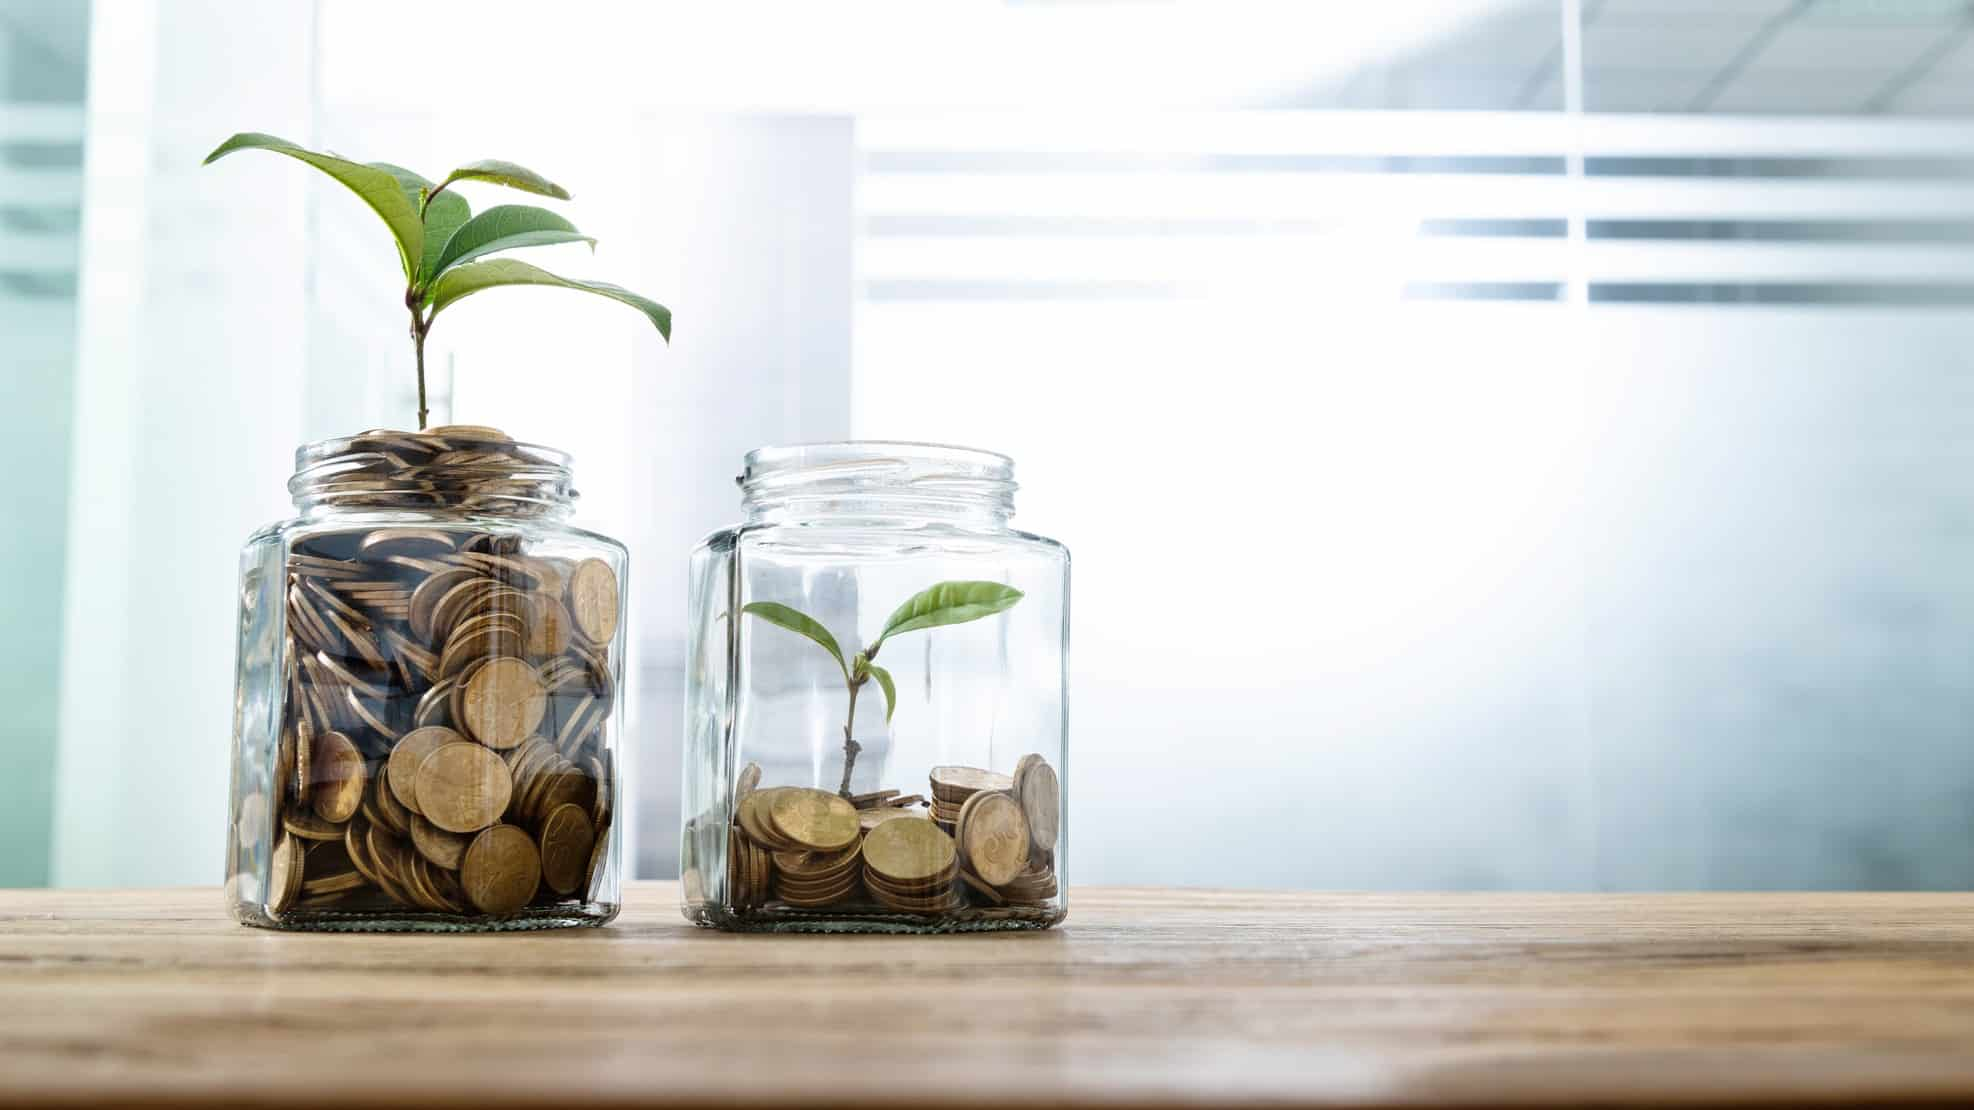 Two small seedlings planted in two jars atop different amounts of coins, indicating share price movements for ASX growth and value shares